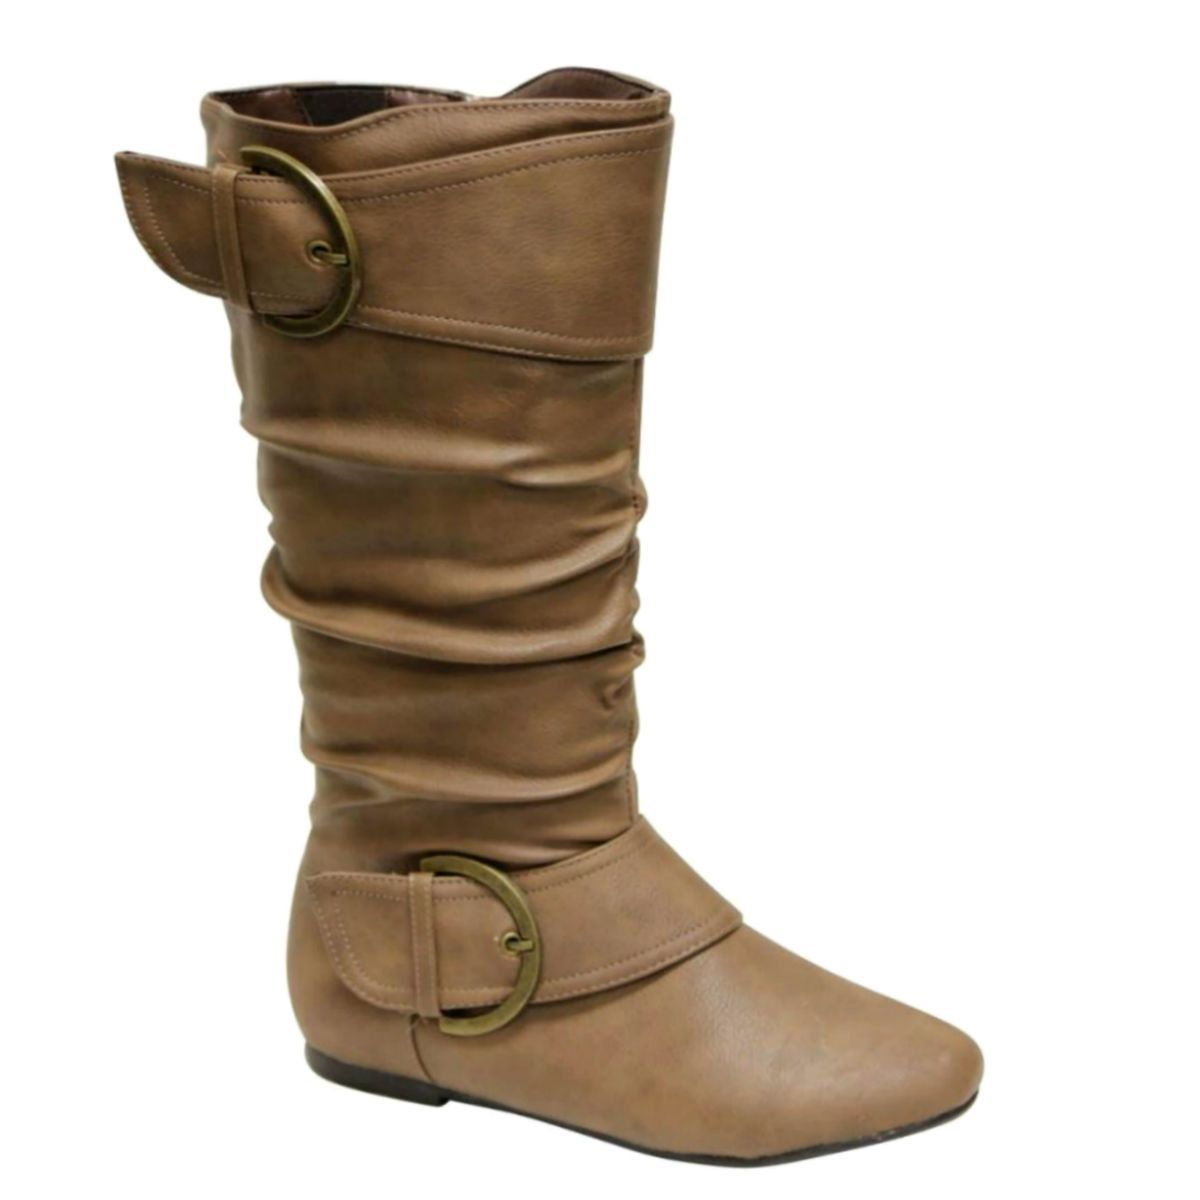 Kick It Up A Notch With These Tall Boots And Ready To Jam